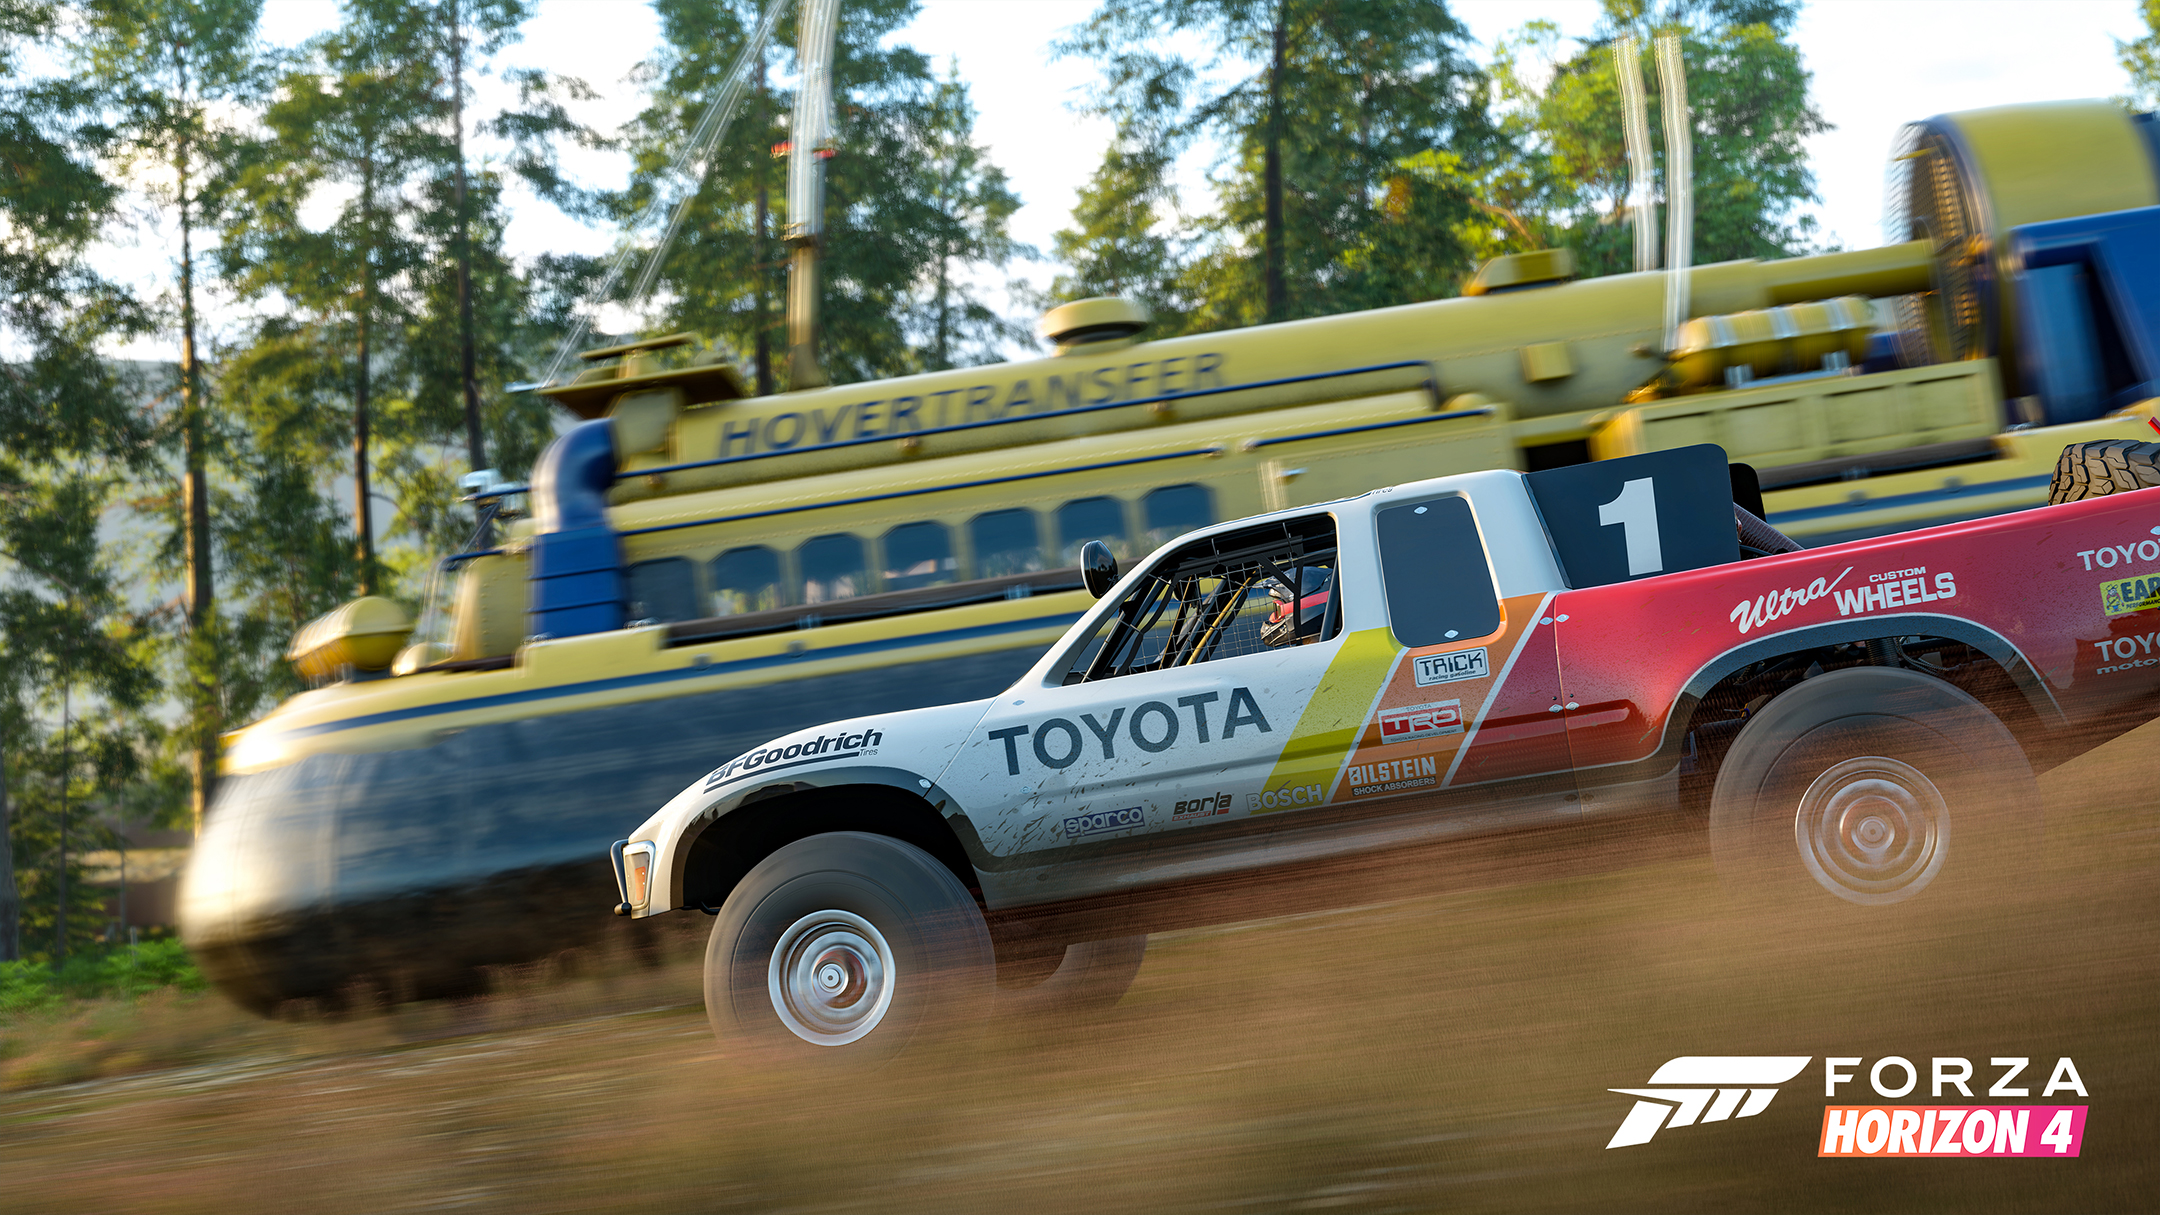 Forza Horizon 4 - 2018 - screen cars - Toyota Hilux